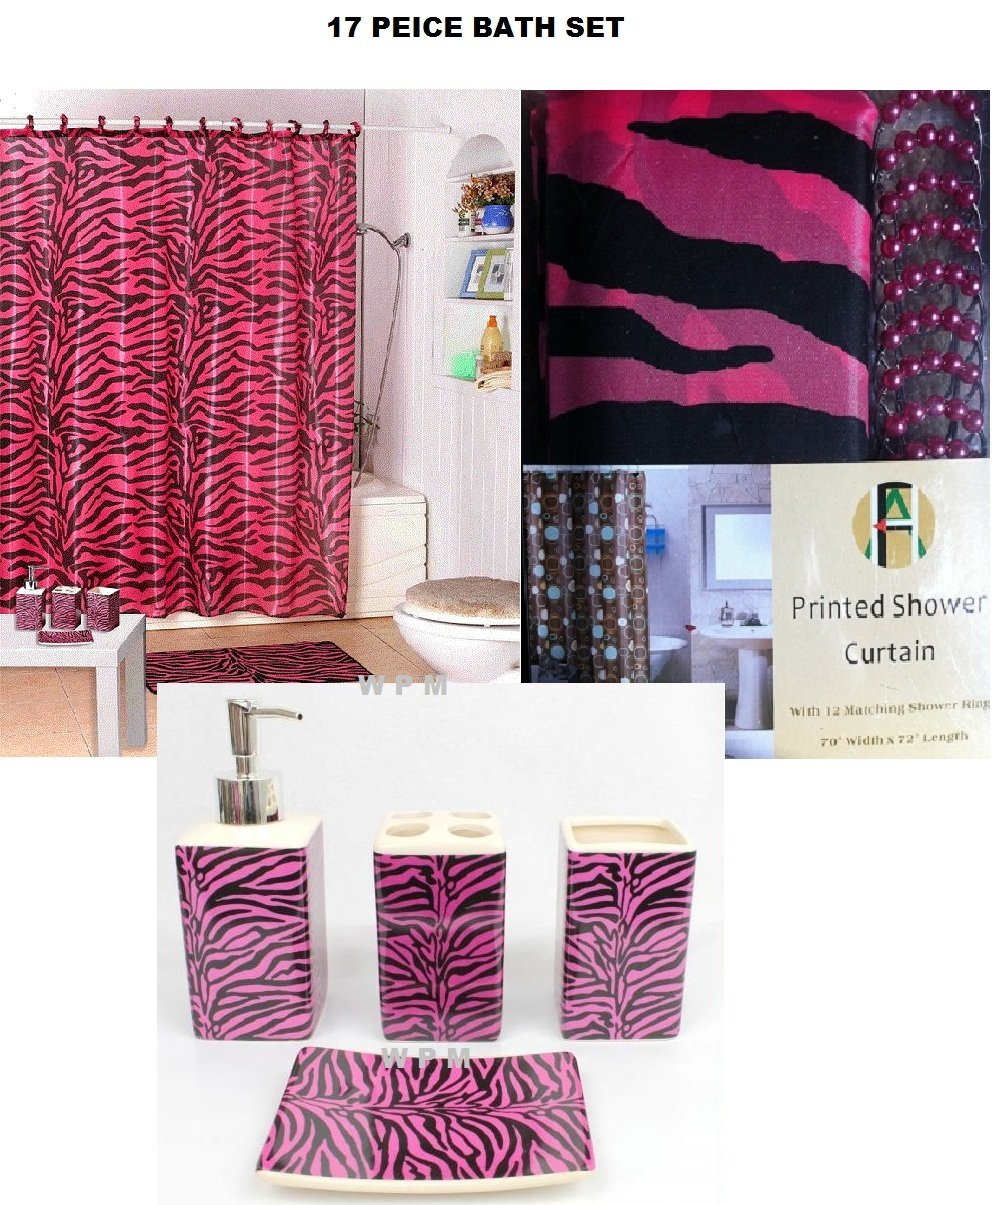 Amazon.com: 17 Piece Bath Accessory Set  Pink Zebra Shower Curtain With  Decorative Rings + Bathroom Accessories Set: Home U0026 Kitchen